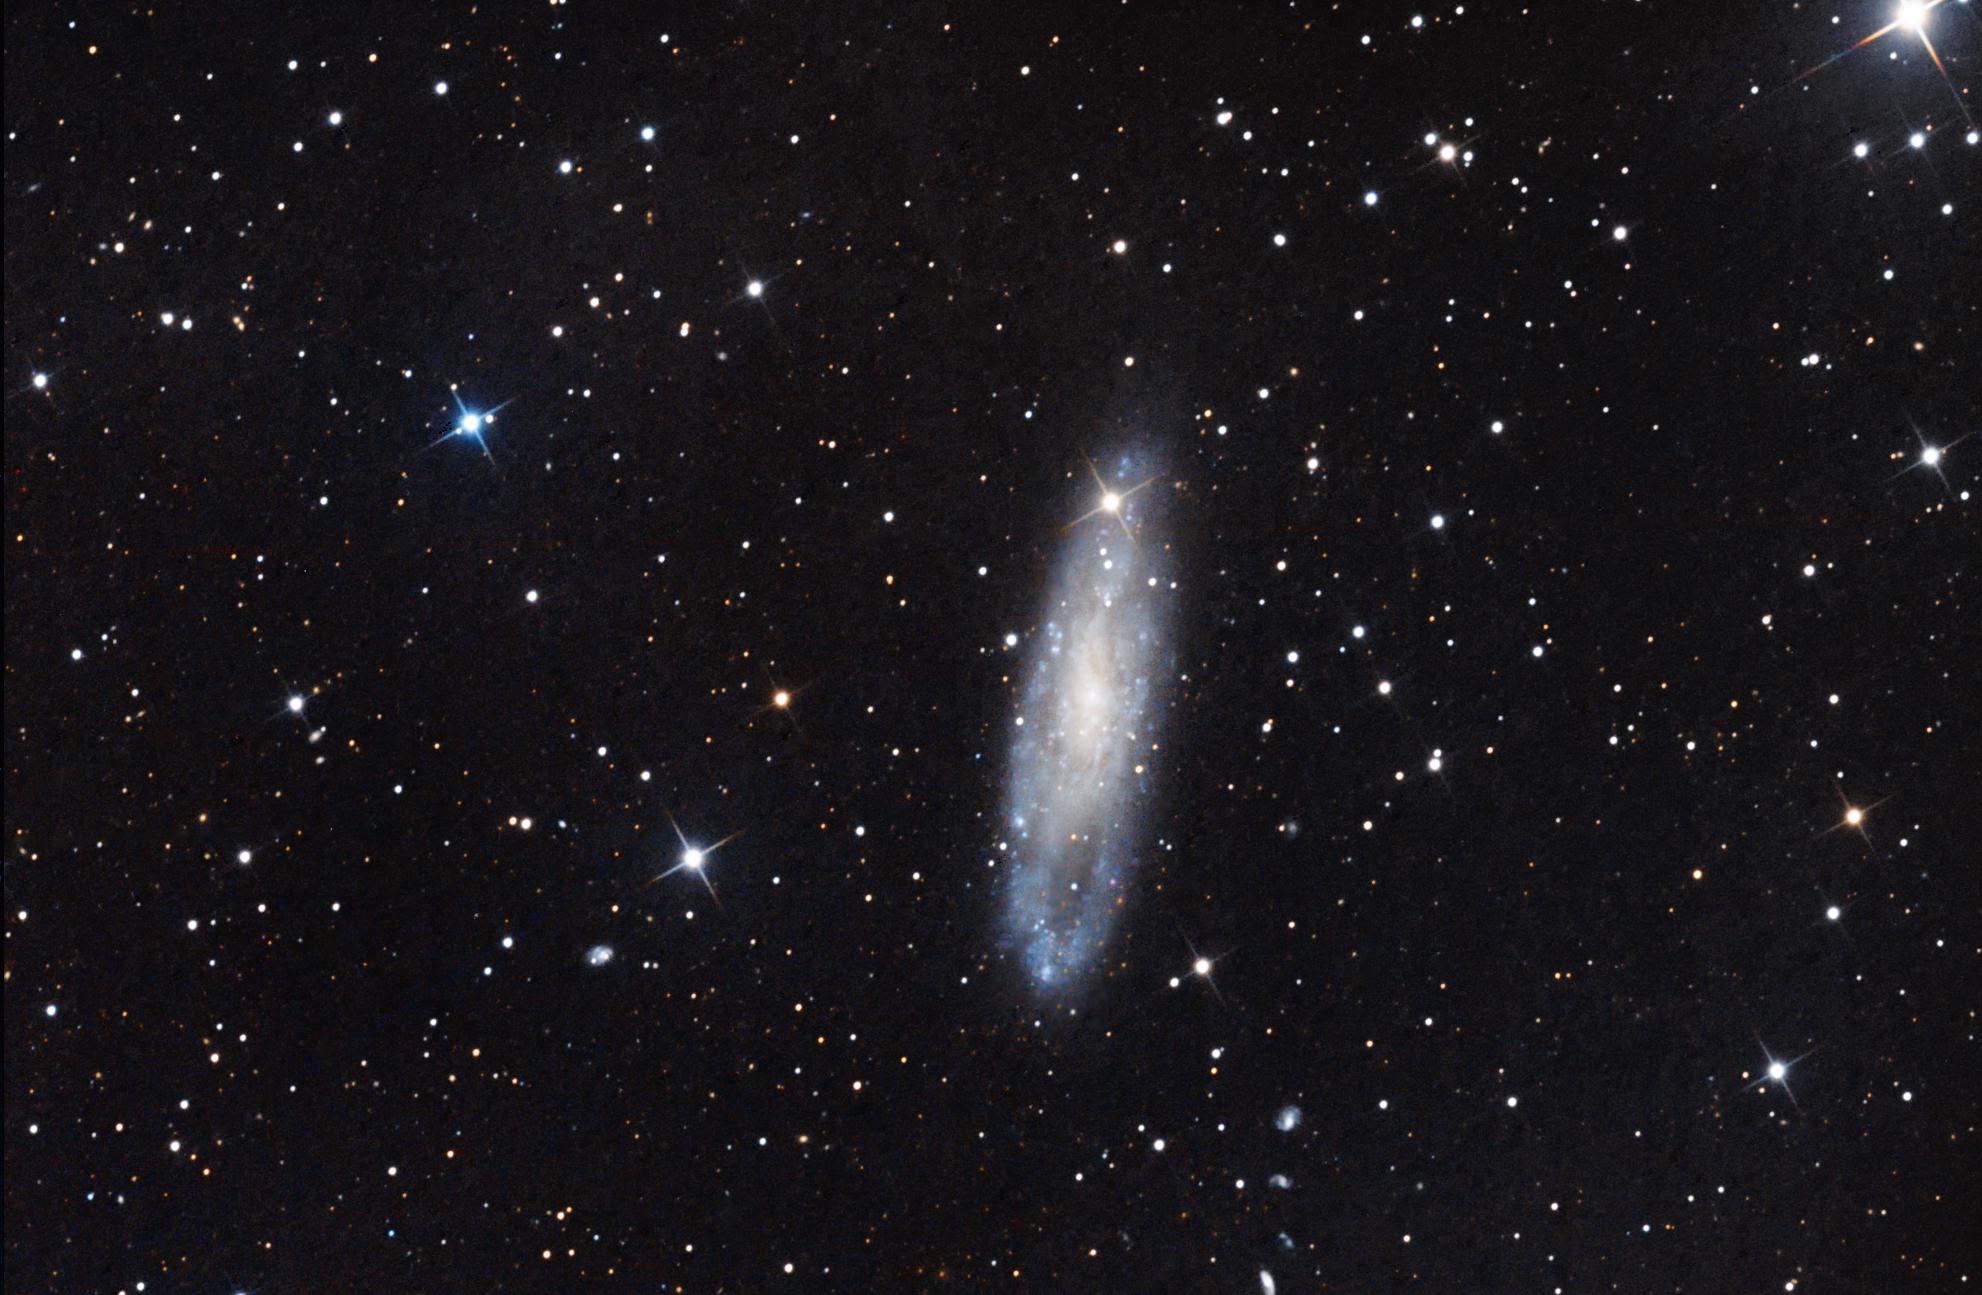 NGC 247 Galaxy in Cetus